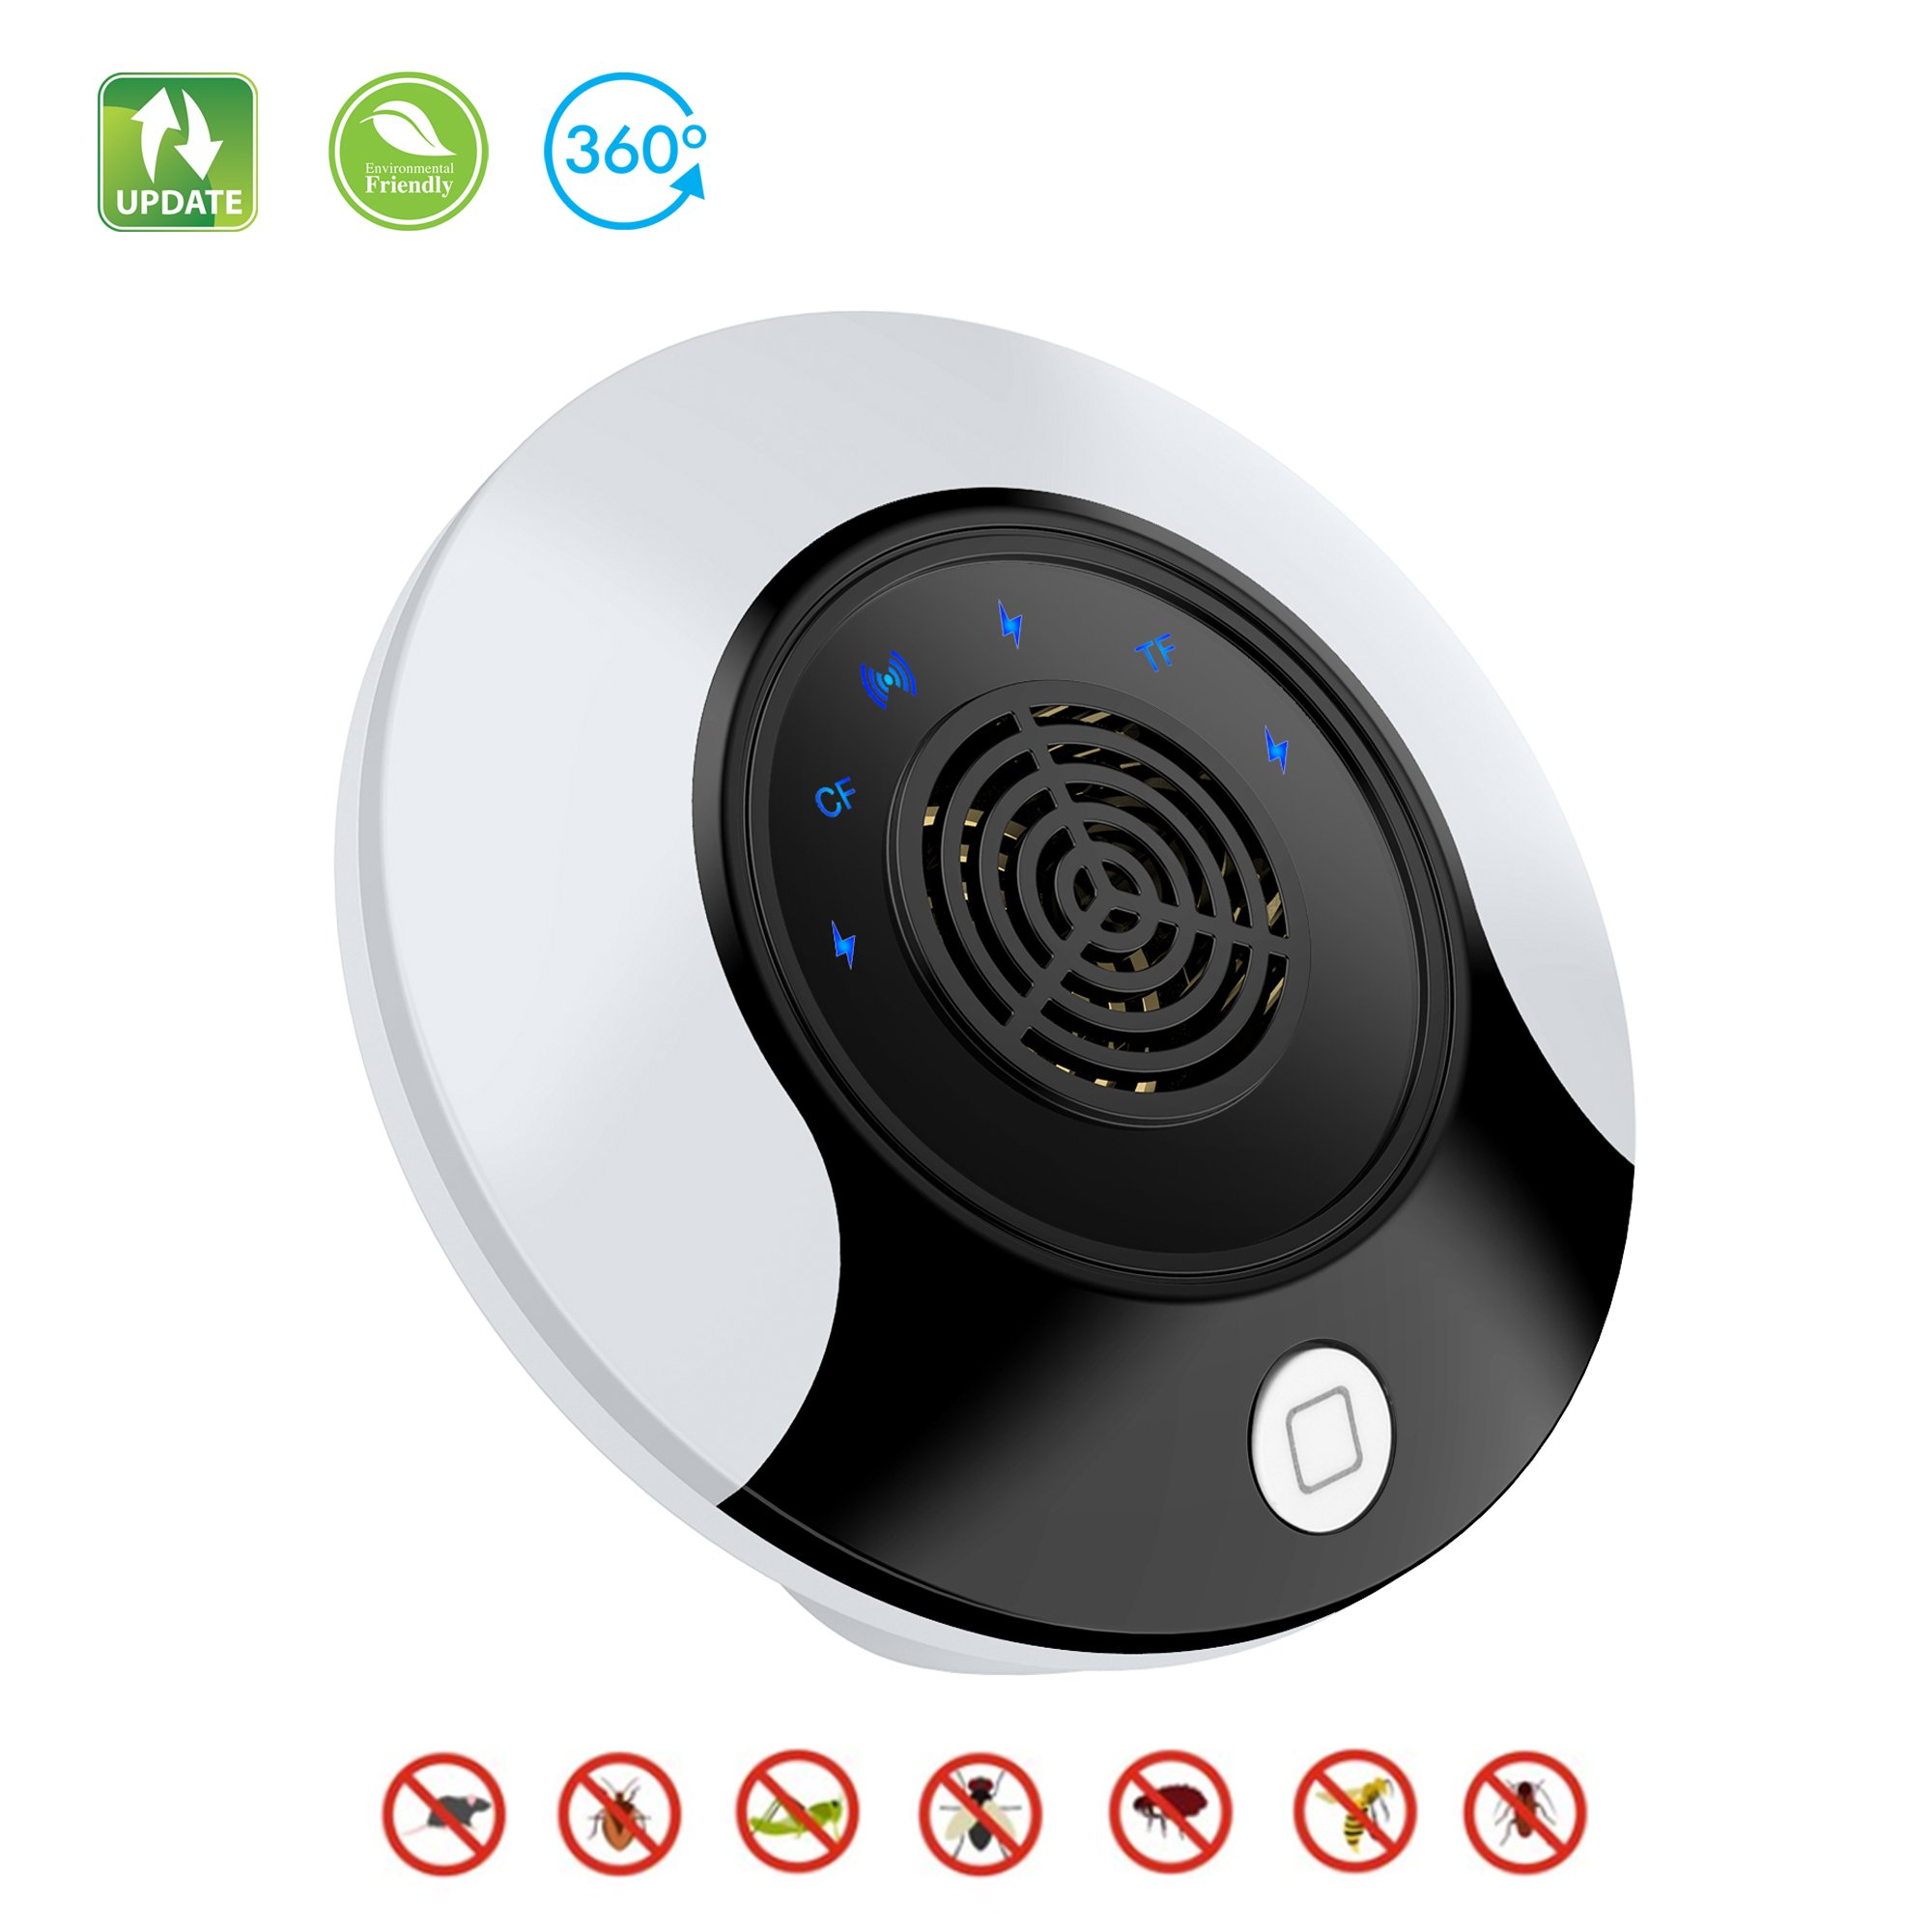 iFedio Ultrasonic Pest Repellent Insect Electronic Pest Control Bug Repellent for Mosquito Repellent Rodent Fly Cockroach Mouse Best Pest Repellent Plug in Home Indoor 2018 New